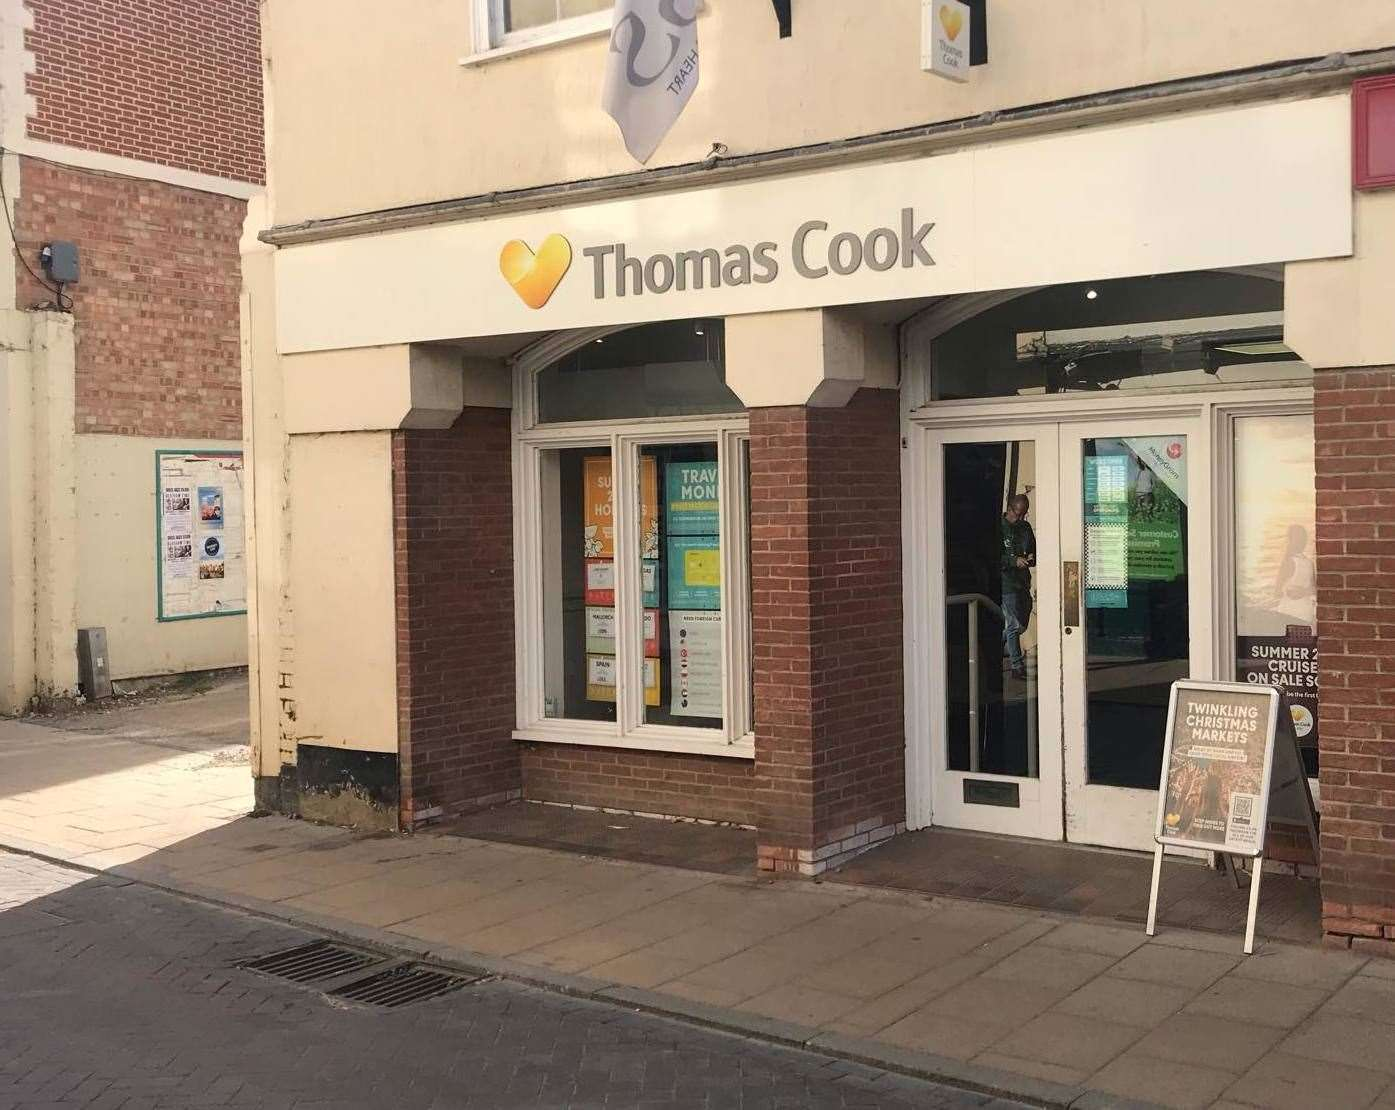 Thomas Cook Diss branch, 11 Market Place. Picture by Victoria Scheer.